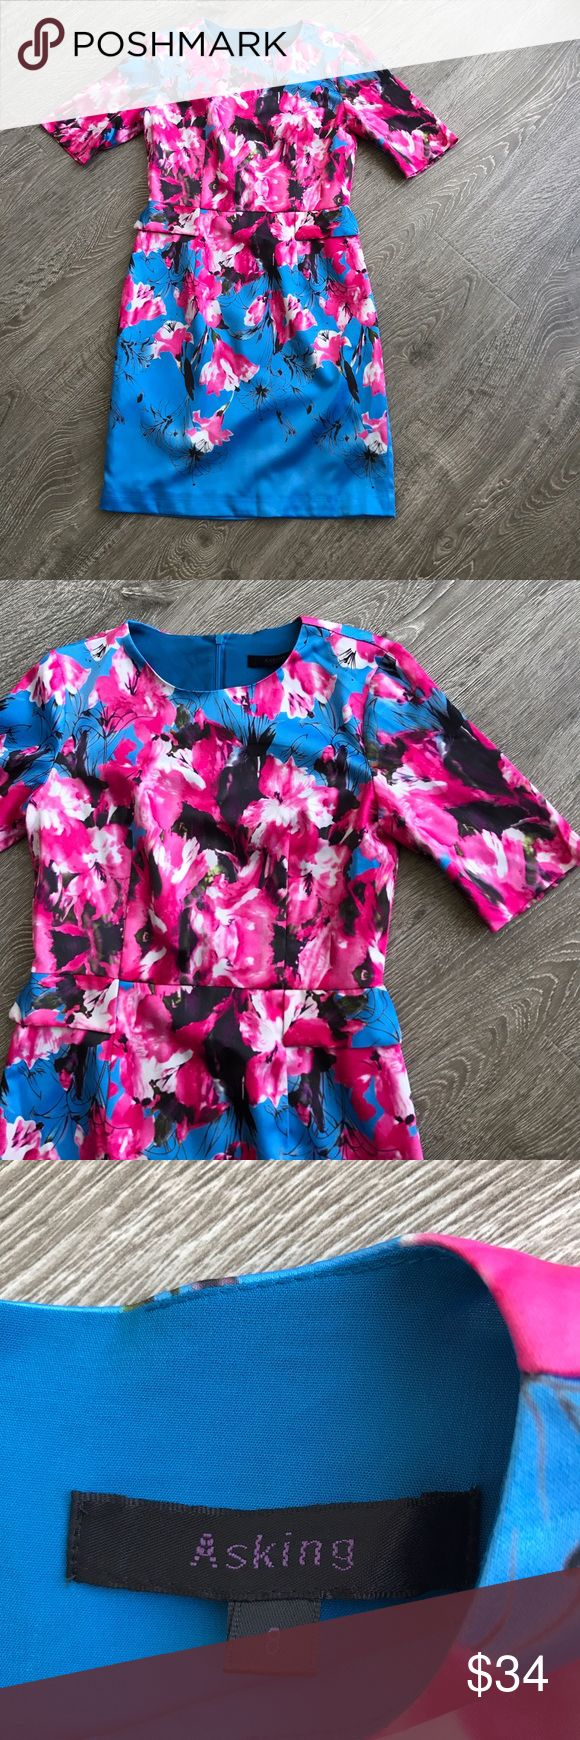 """Gorgeous Floral Print Fit Hot Pink w Blue Dress Asking Clothing Brand, stunning floral print dress size 8. Measures 17"""" armpit to armpit laid flat 36"""" top to bottom length. There is no stretch in fabric. Zipper in the back. As is - 2 tiny runs - one beneath the faux pocket, and the other on the bottom of skirt see photos - pattern is so lively it's hard to notice either. Hot Pink & Blue flowers, the colors in this dress are beautiful. Asking Dresses"""